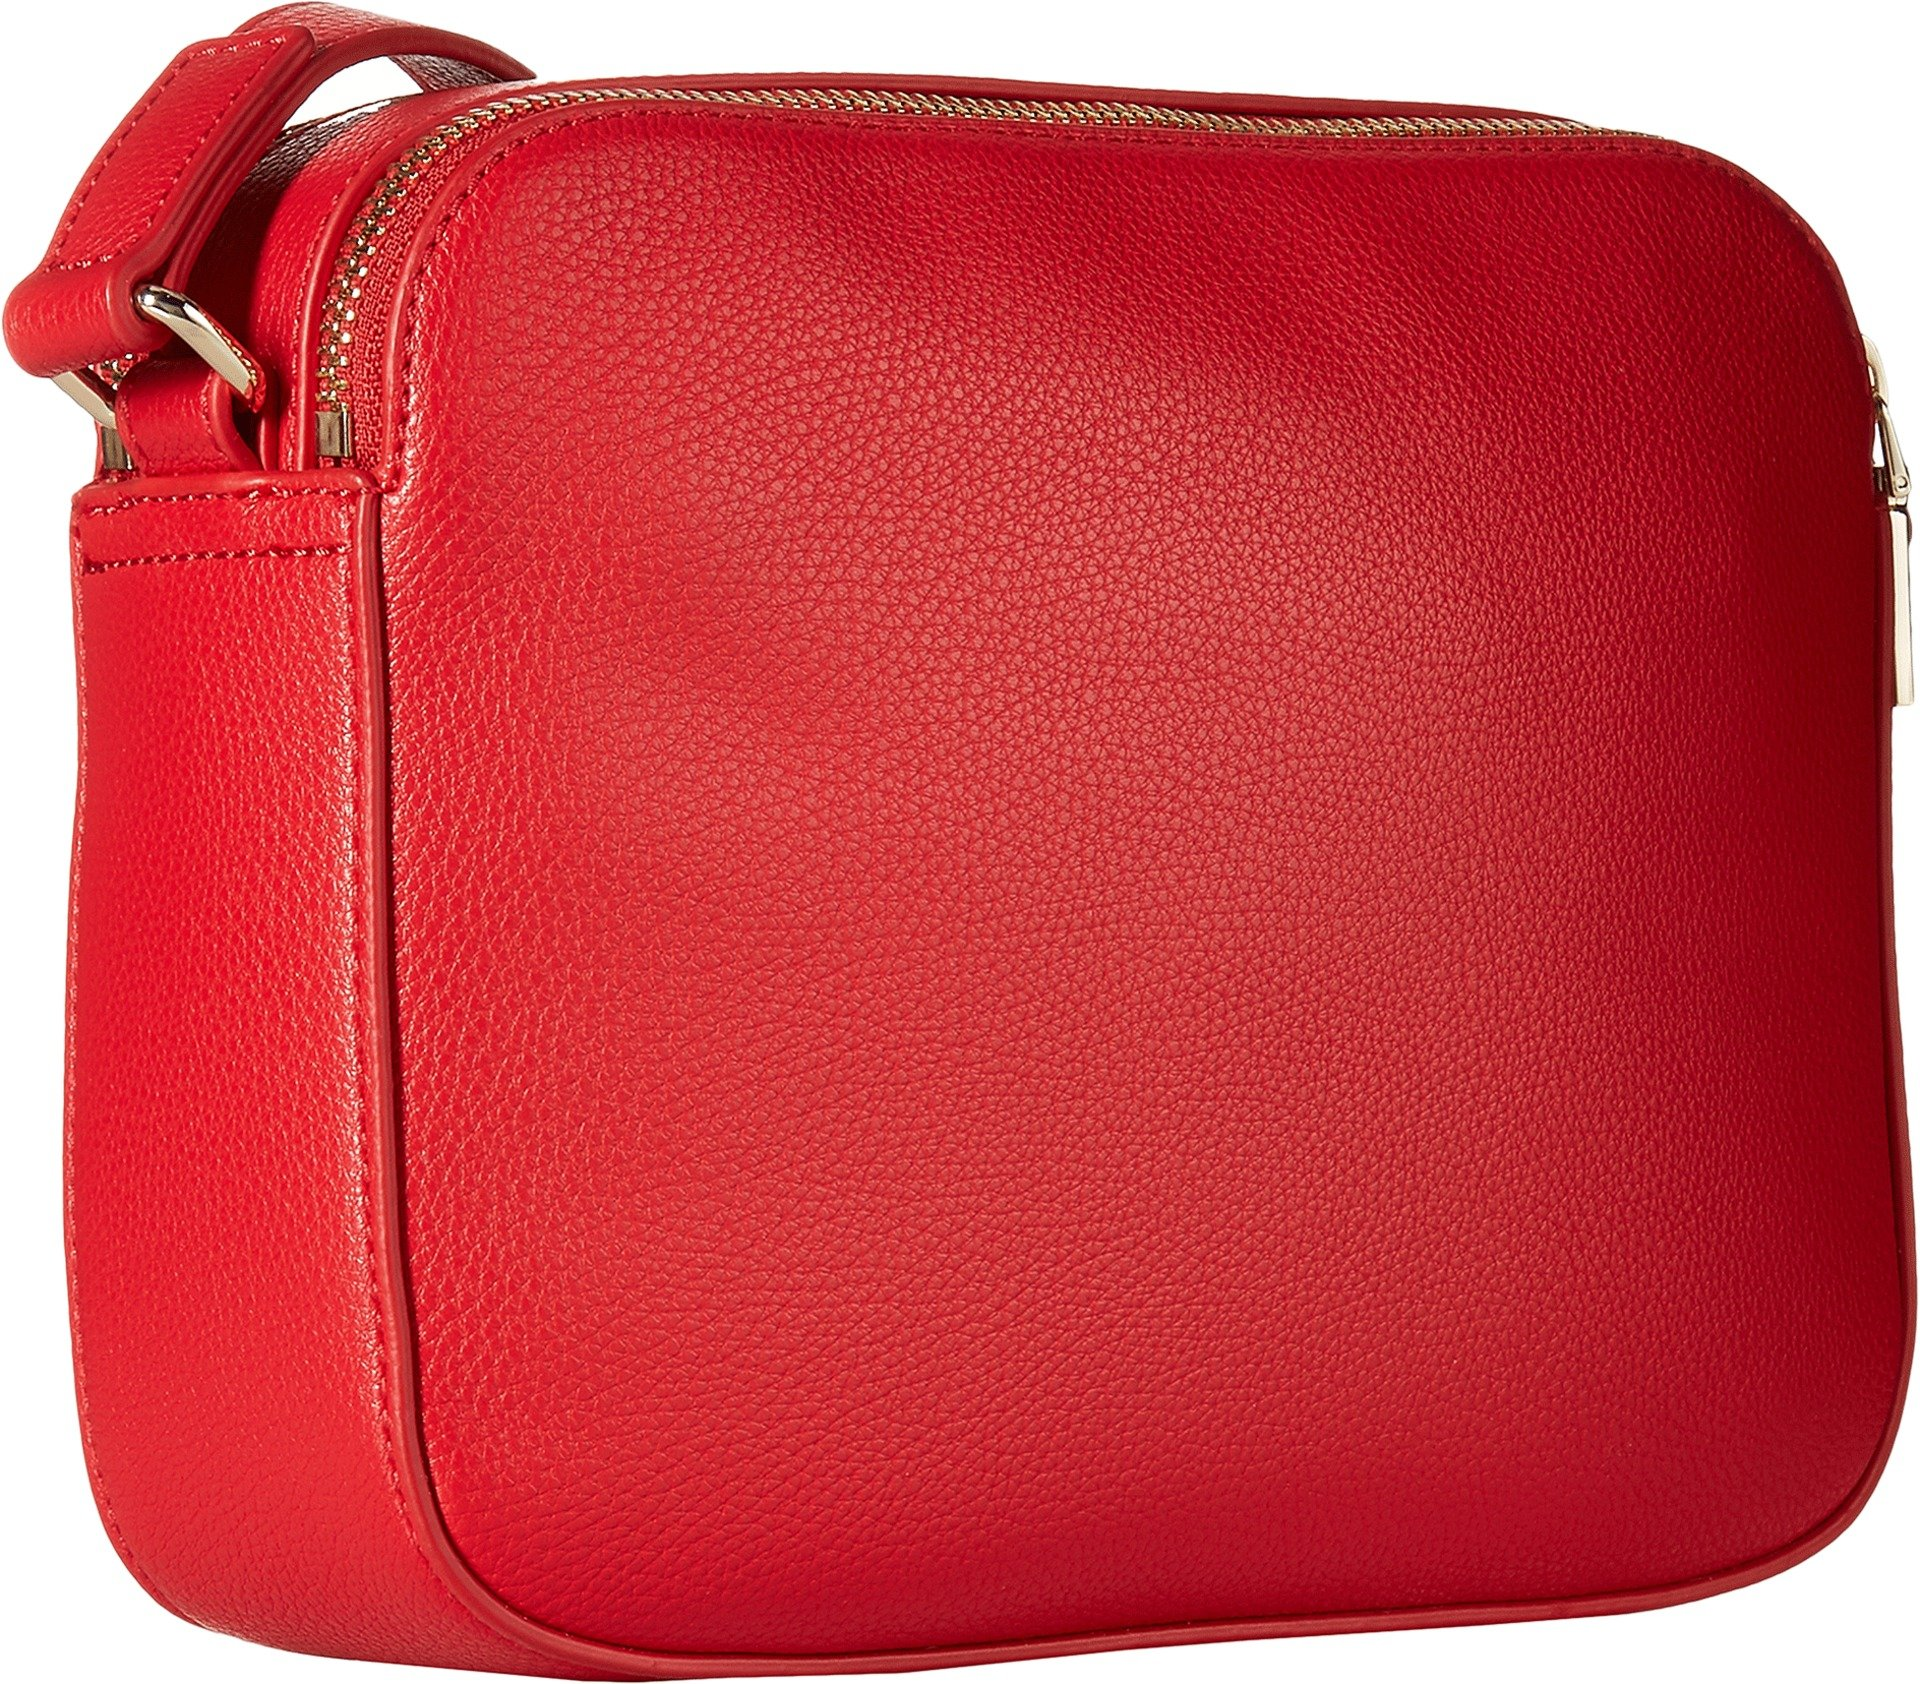 LOVE Moschino Women's Crossbody with Detachable Wristlet Red Crossbody Bag by Love Moschino (Image #2)